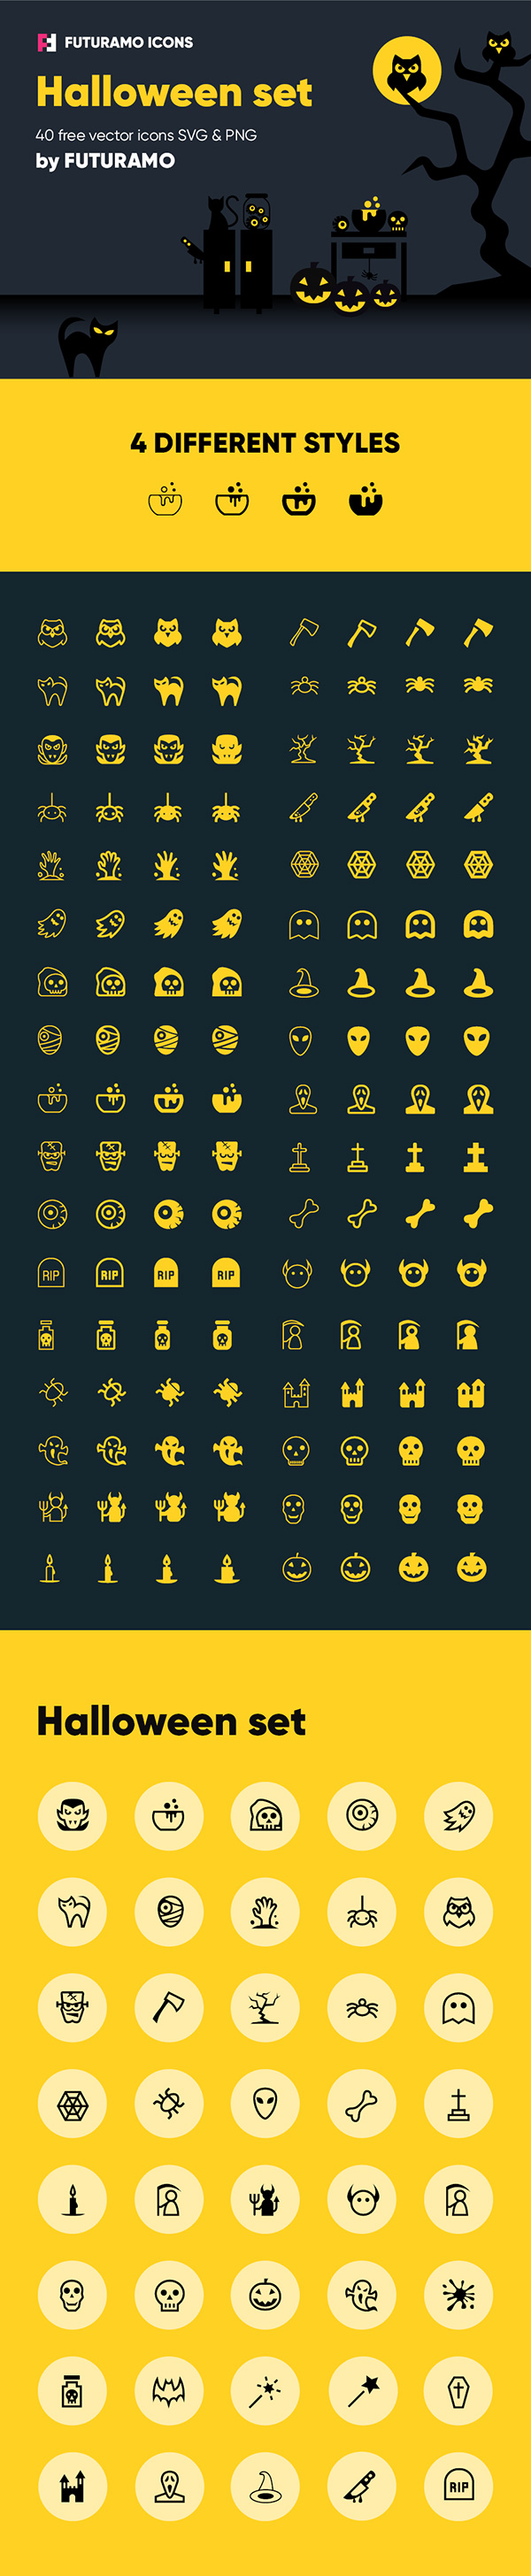 Spooky Halloween: 40 Icons, 4 Styles